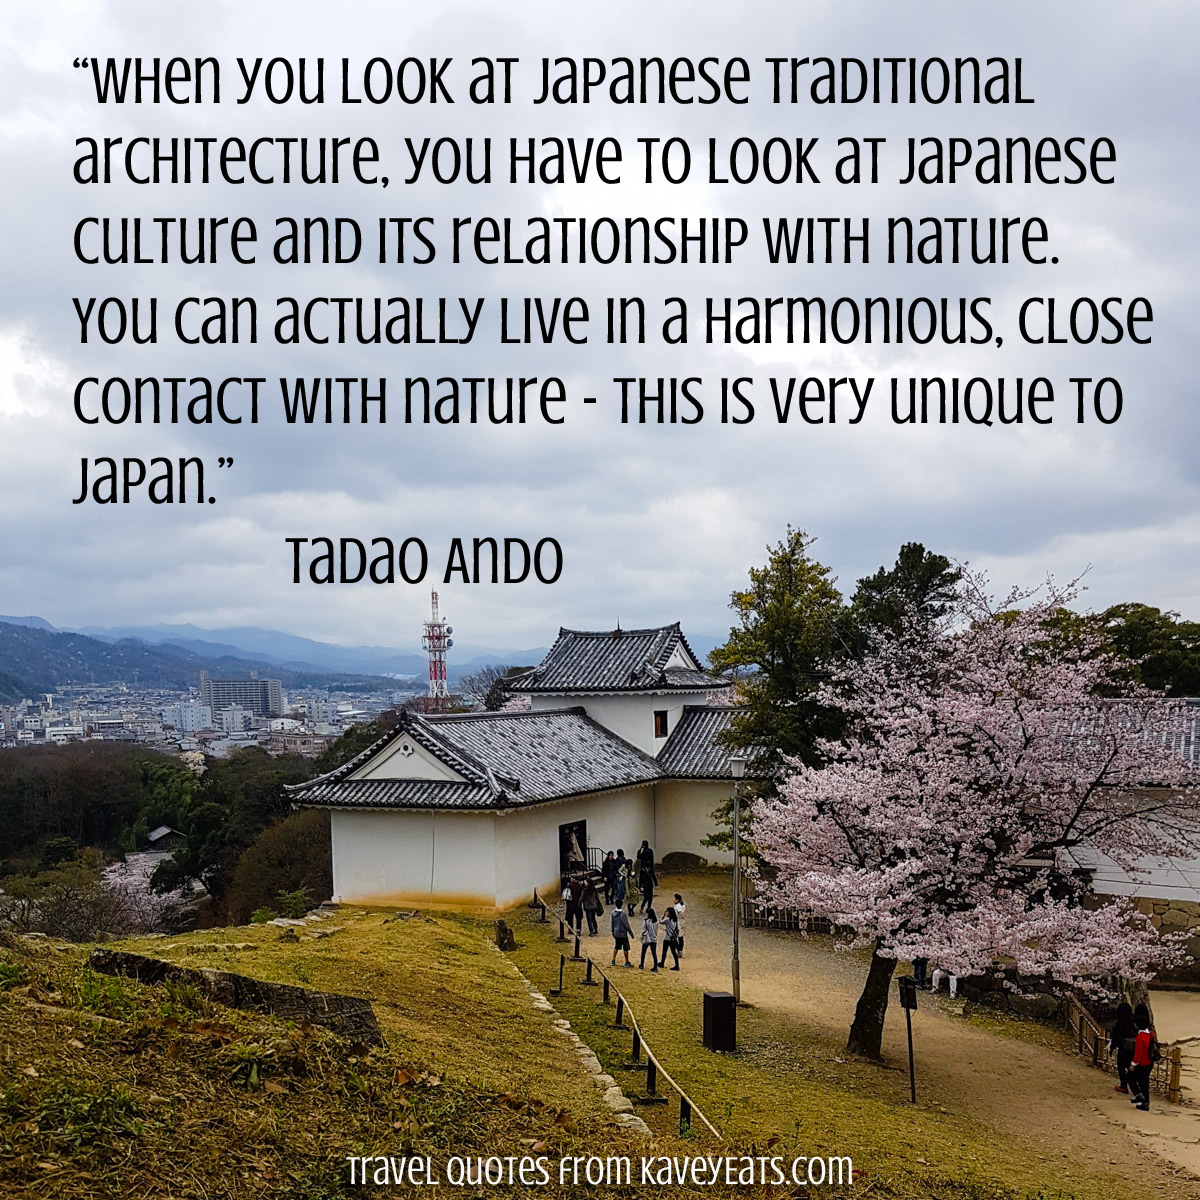 """When you look at Japanese traditional architecture, you have to look at Japanese culture and its relationship with nature. You can actually live in a harmonious, close contact with nature – this is very unique to Japan."" Tadao Ando"